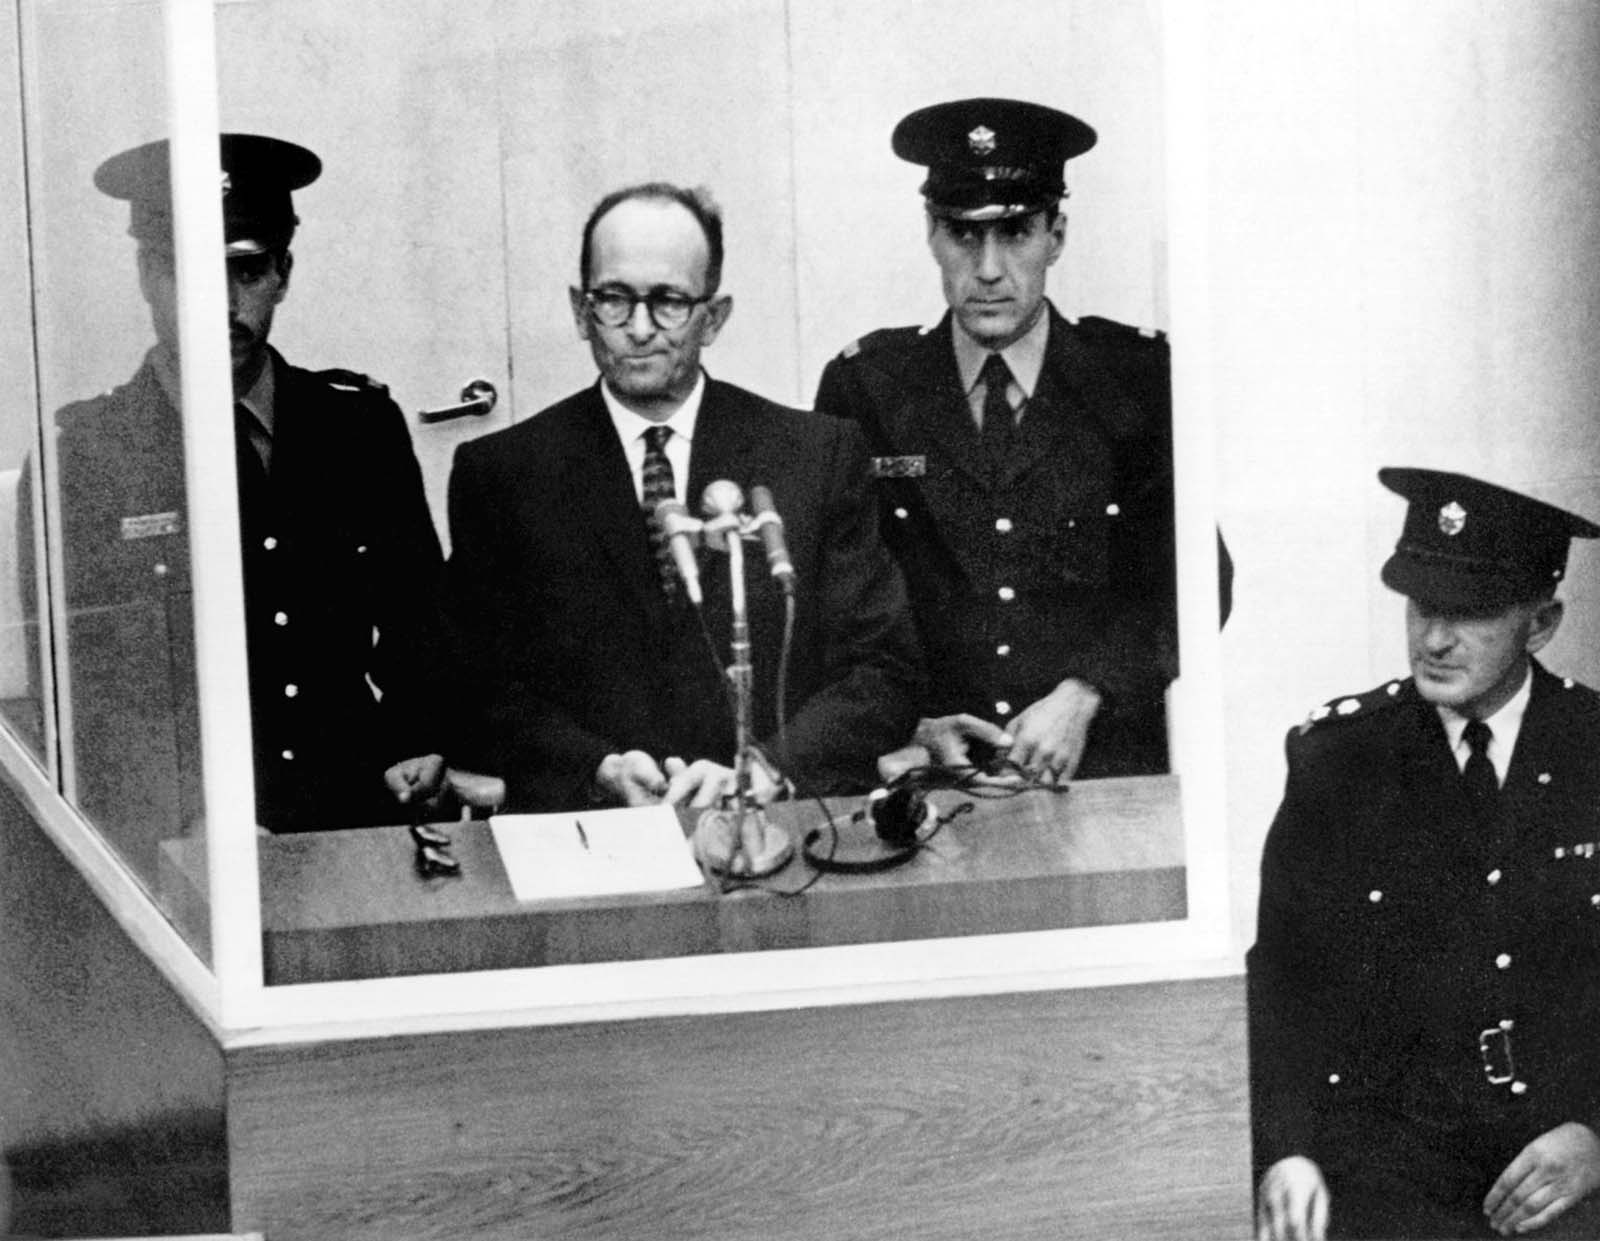 In the closing days of the war and immediately thereafter, Eichmann found refuge with fellow SS members on the shores of Austria's Altaussee Lake.